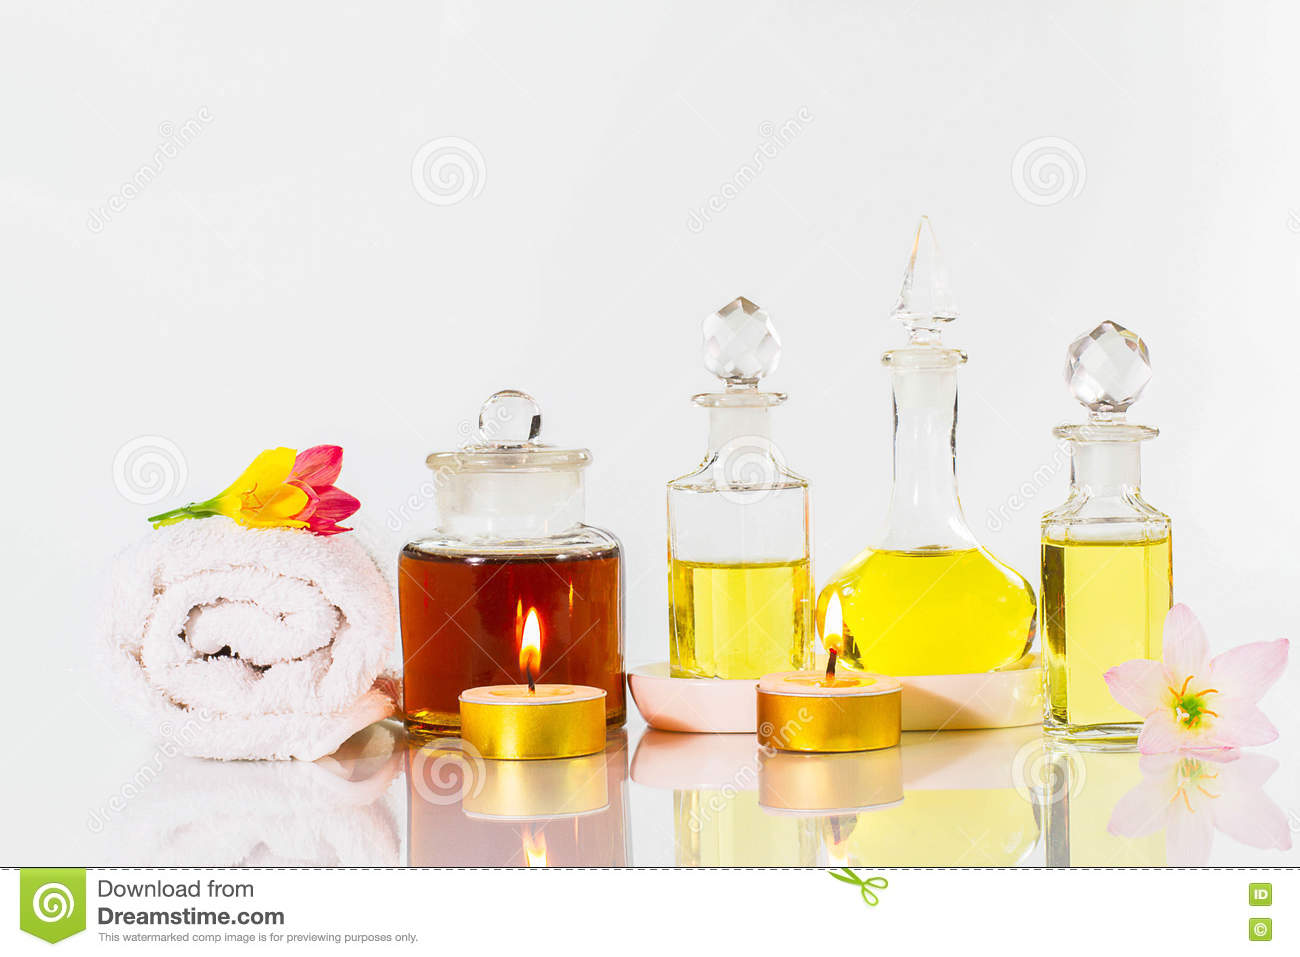 Vintage Old Bottles Of Aromatic Oils With Candles, Flowers And.